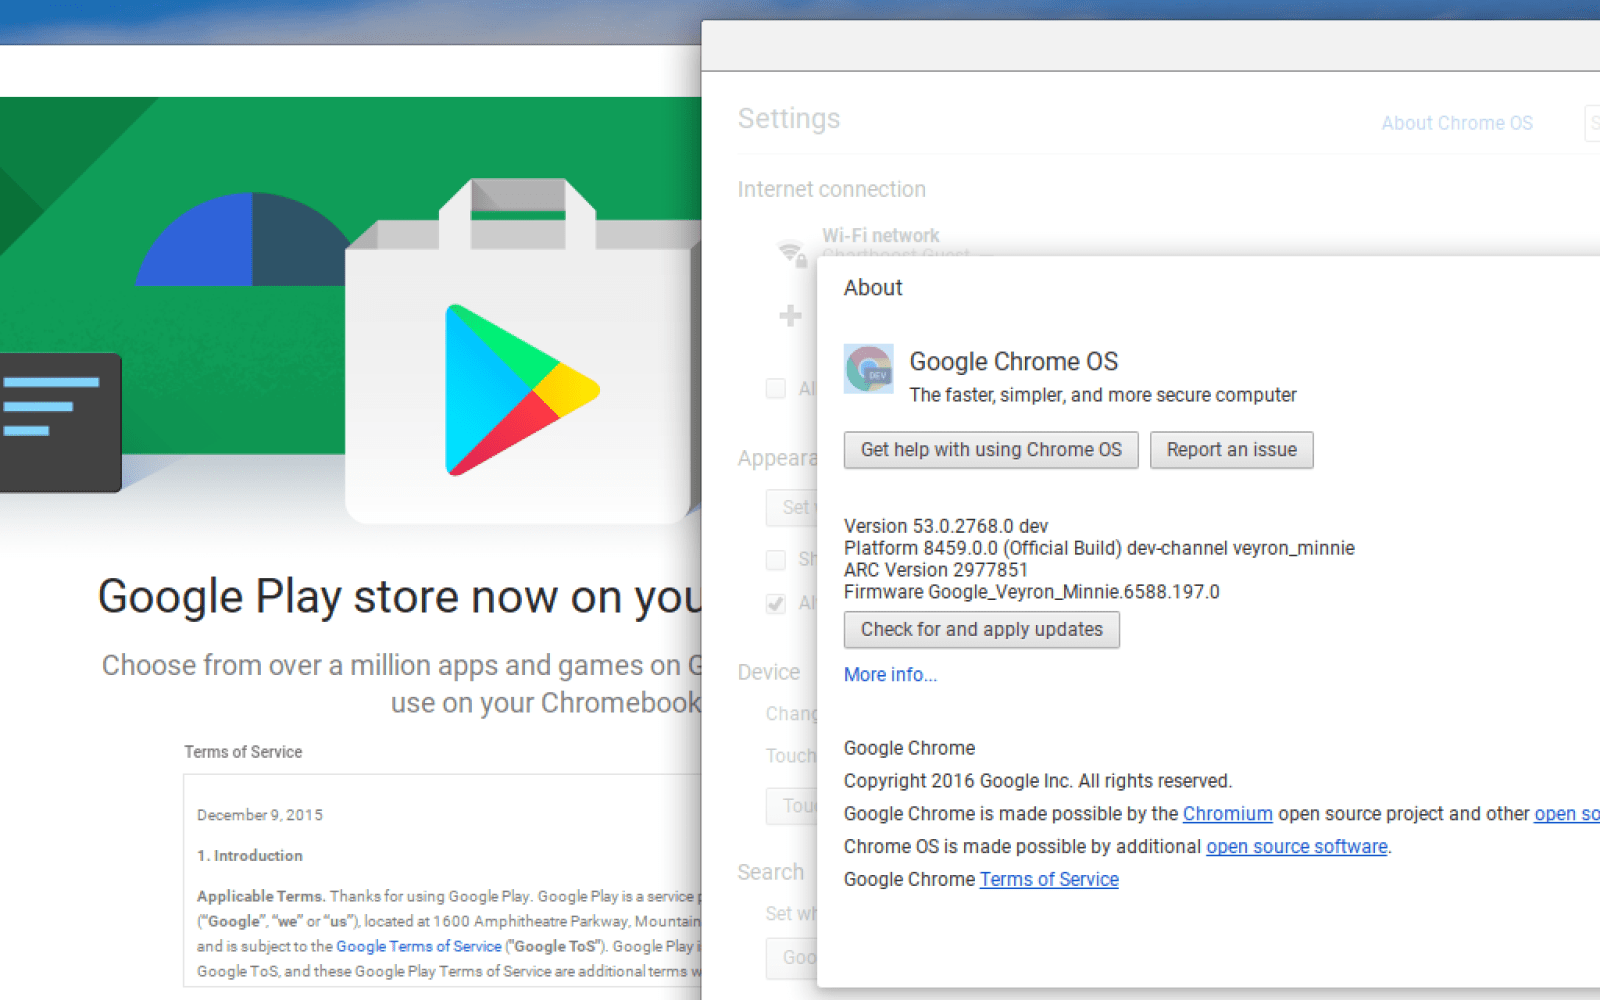 Android apps arrive on Chromebooks with Chrome OS Dev 53